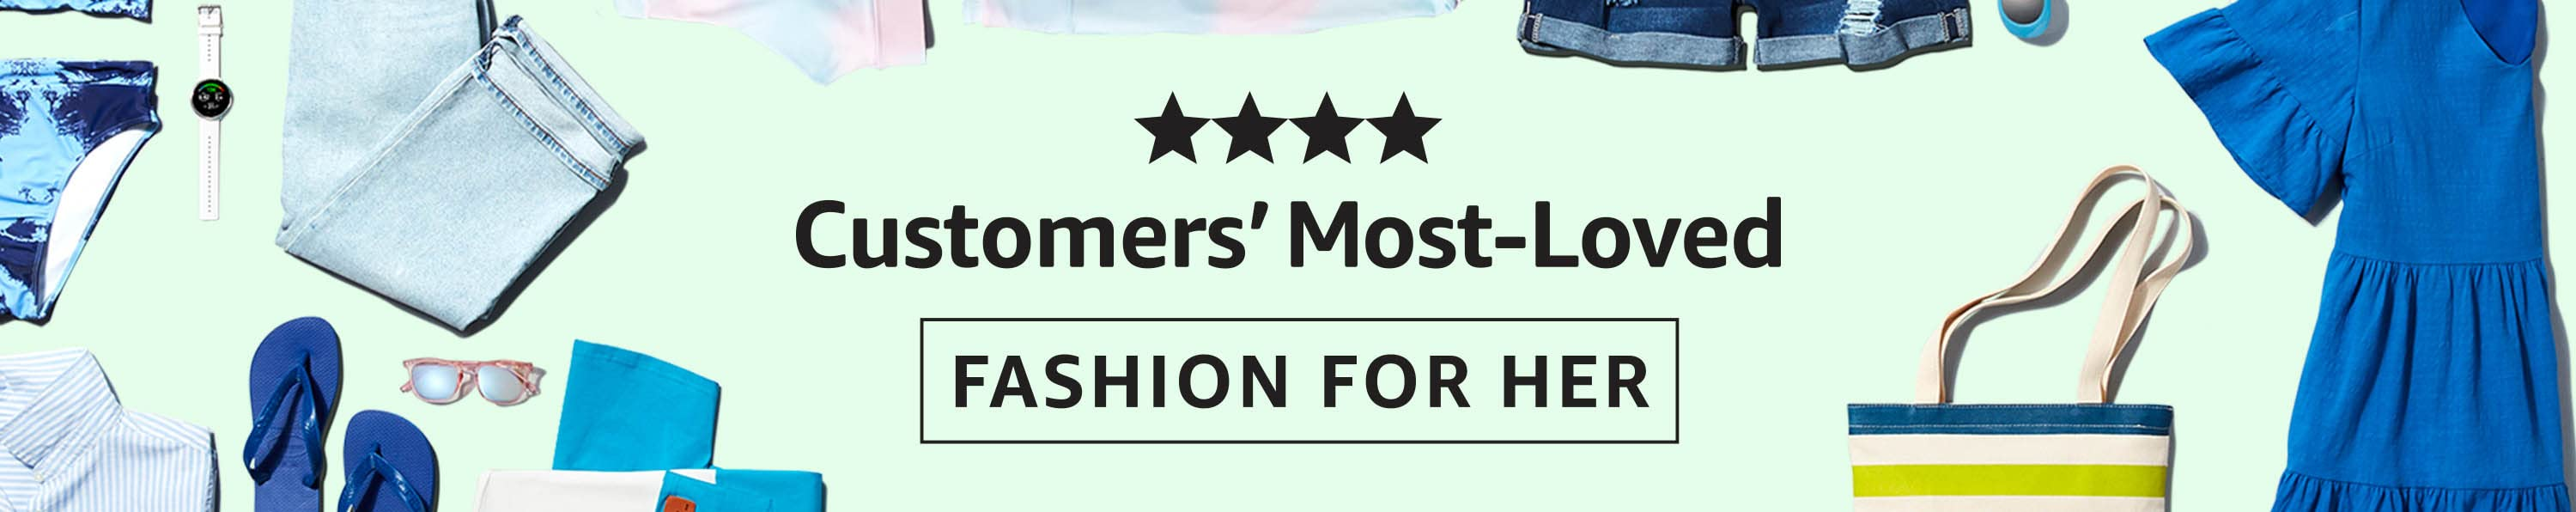 Customers' Most-Loved: Fashion for Her